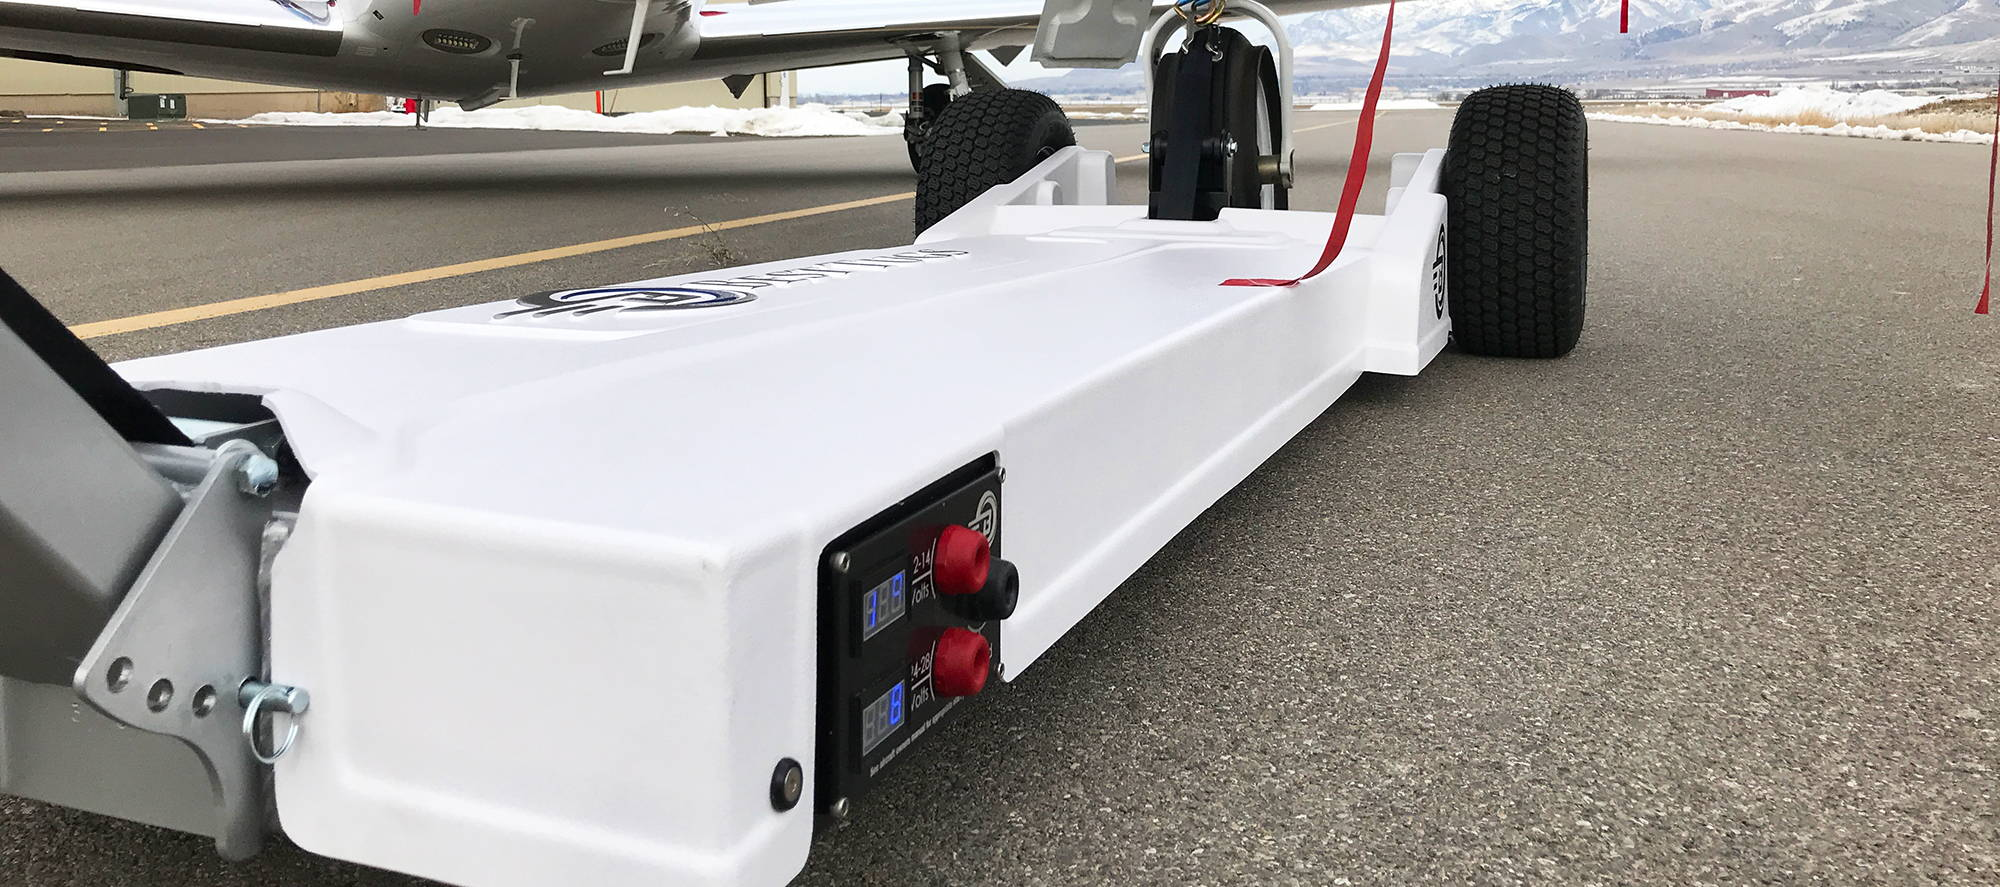 Electric aircraft tug